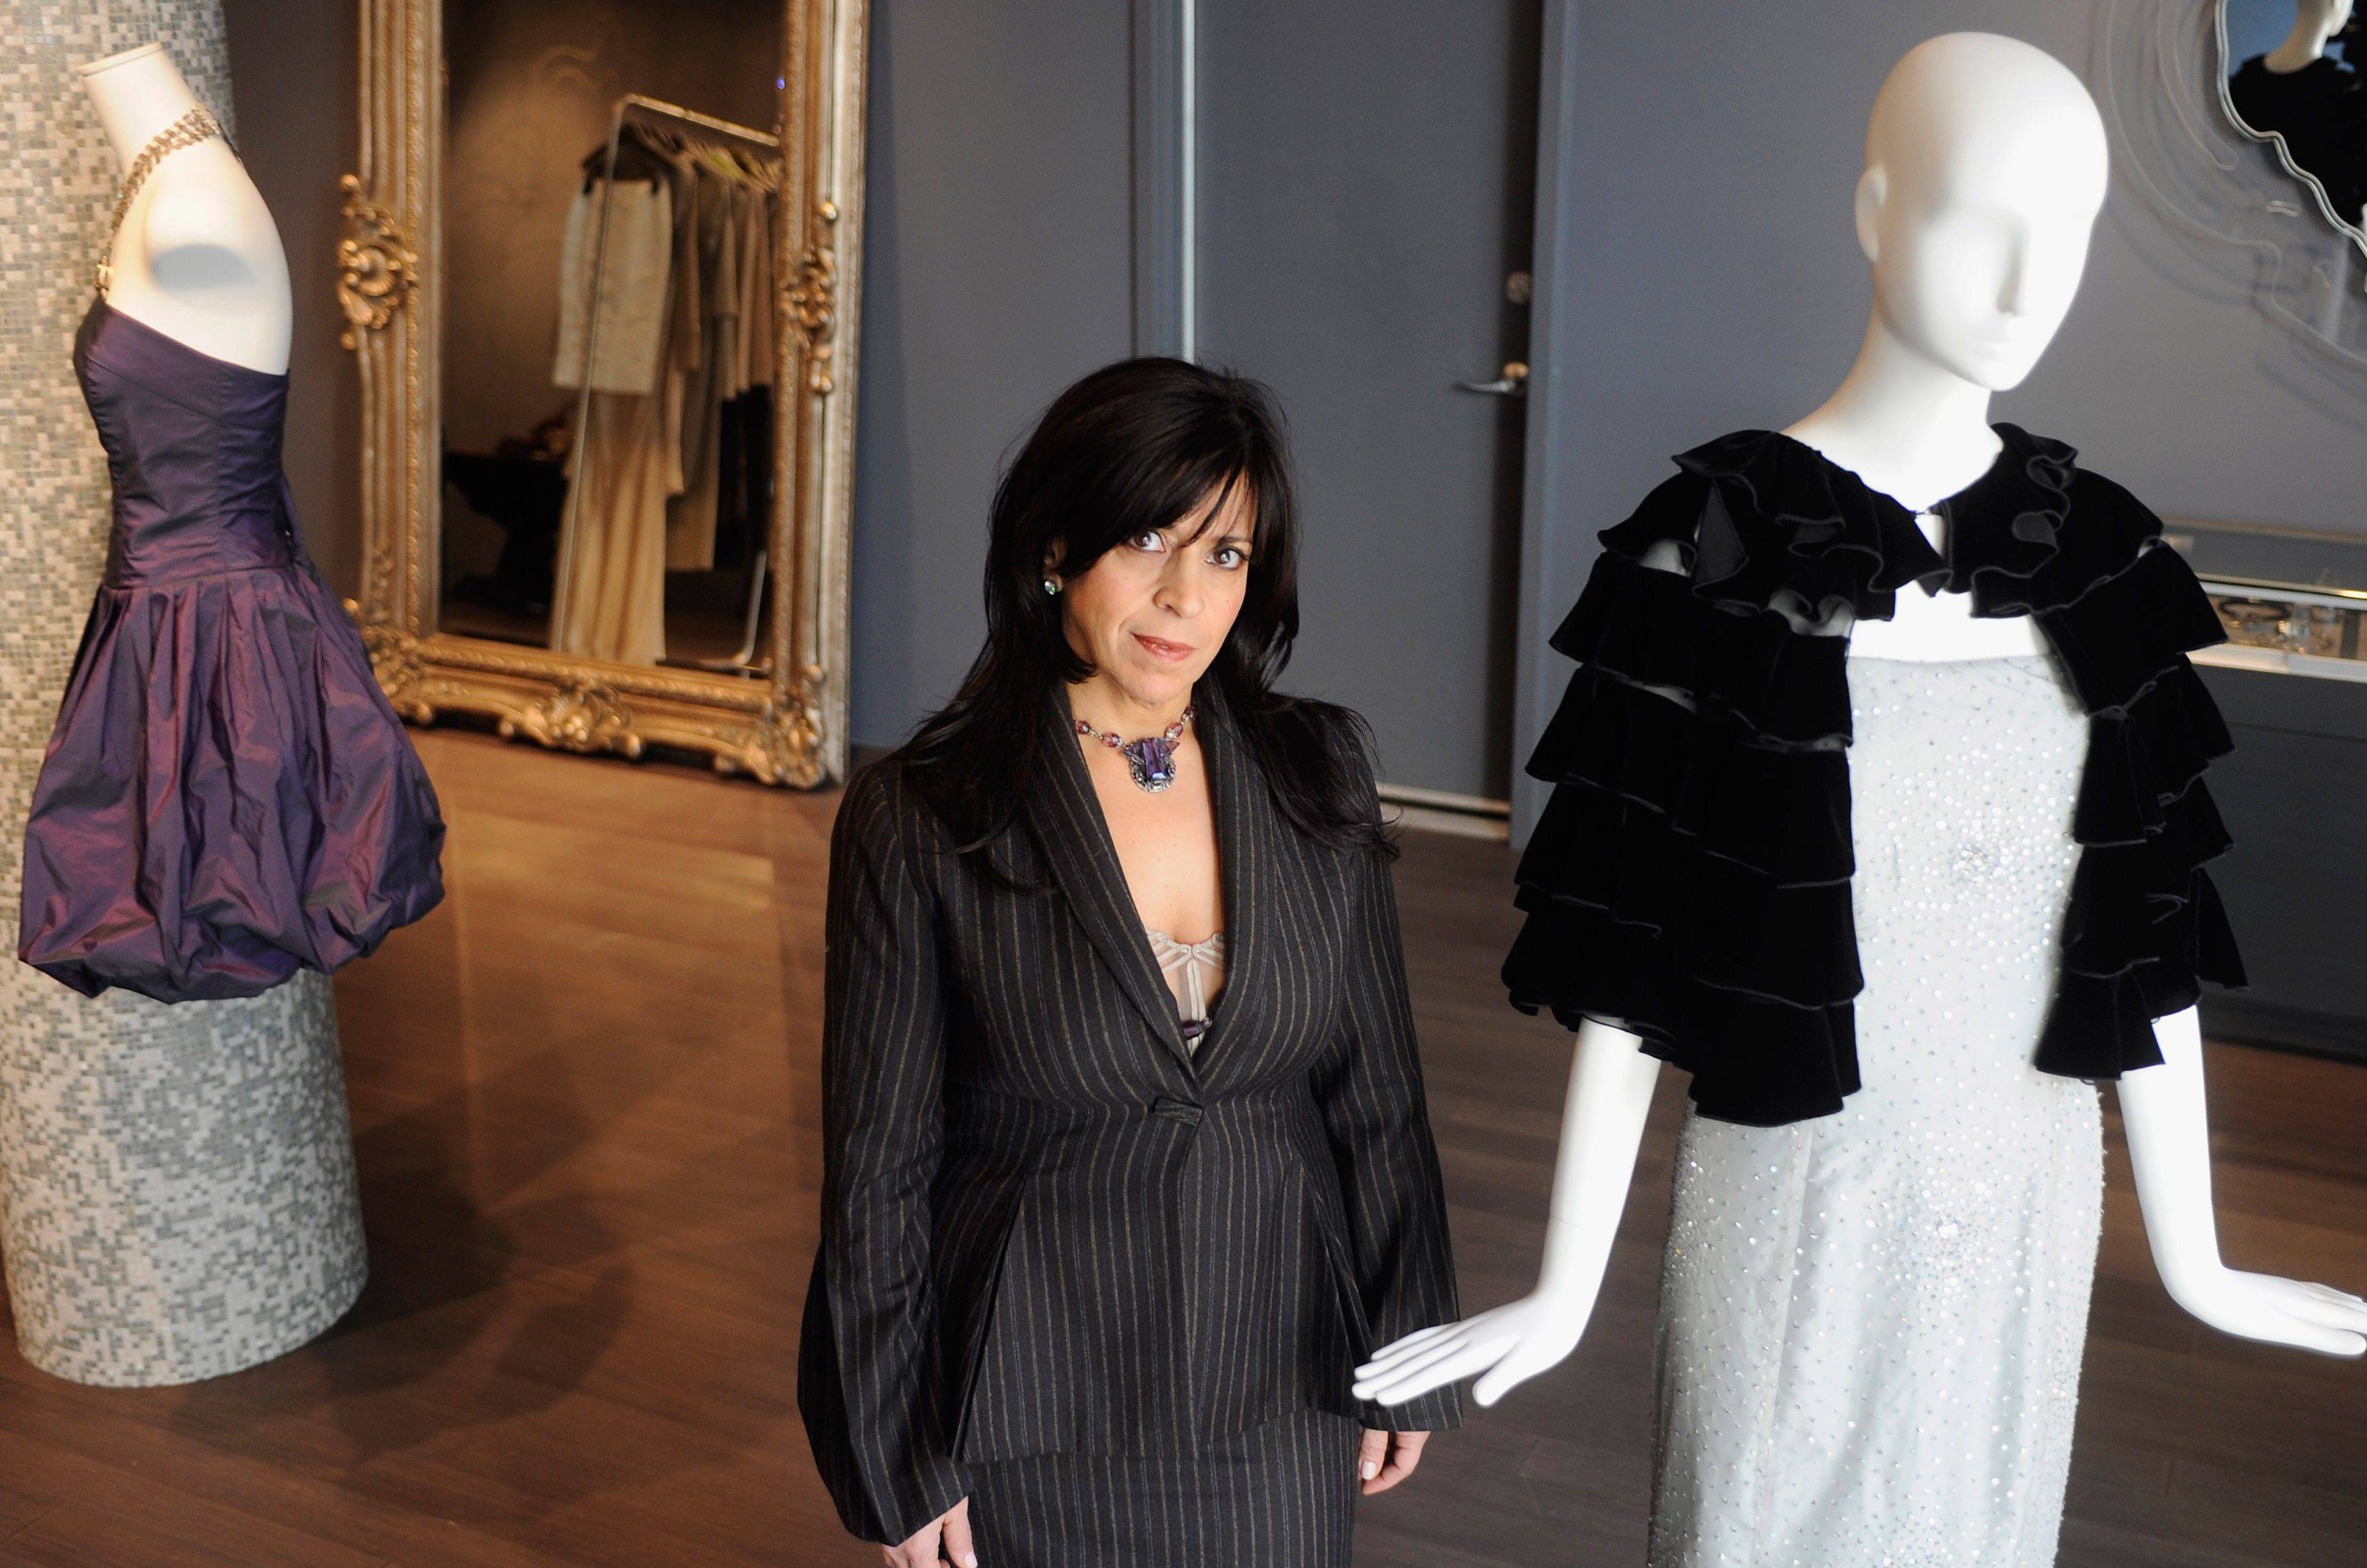 Fashion designer Maria Pinto, seen here in 2008 at her boutique in Chicago just before it closed, is launching her latest collection via Kickstarter. Pinto, one of first lady Michelle Obama's favorite designers, hopes to raise $250,000 in 45 days.